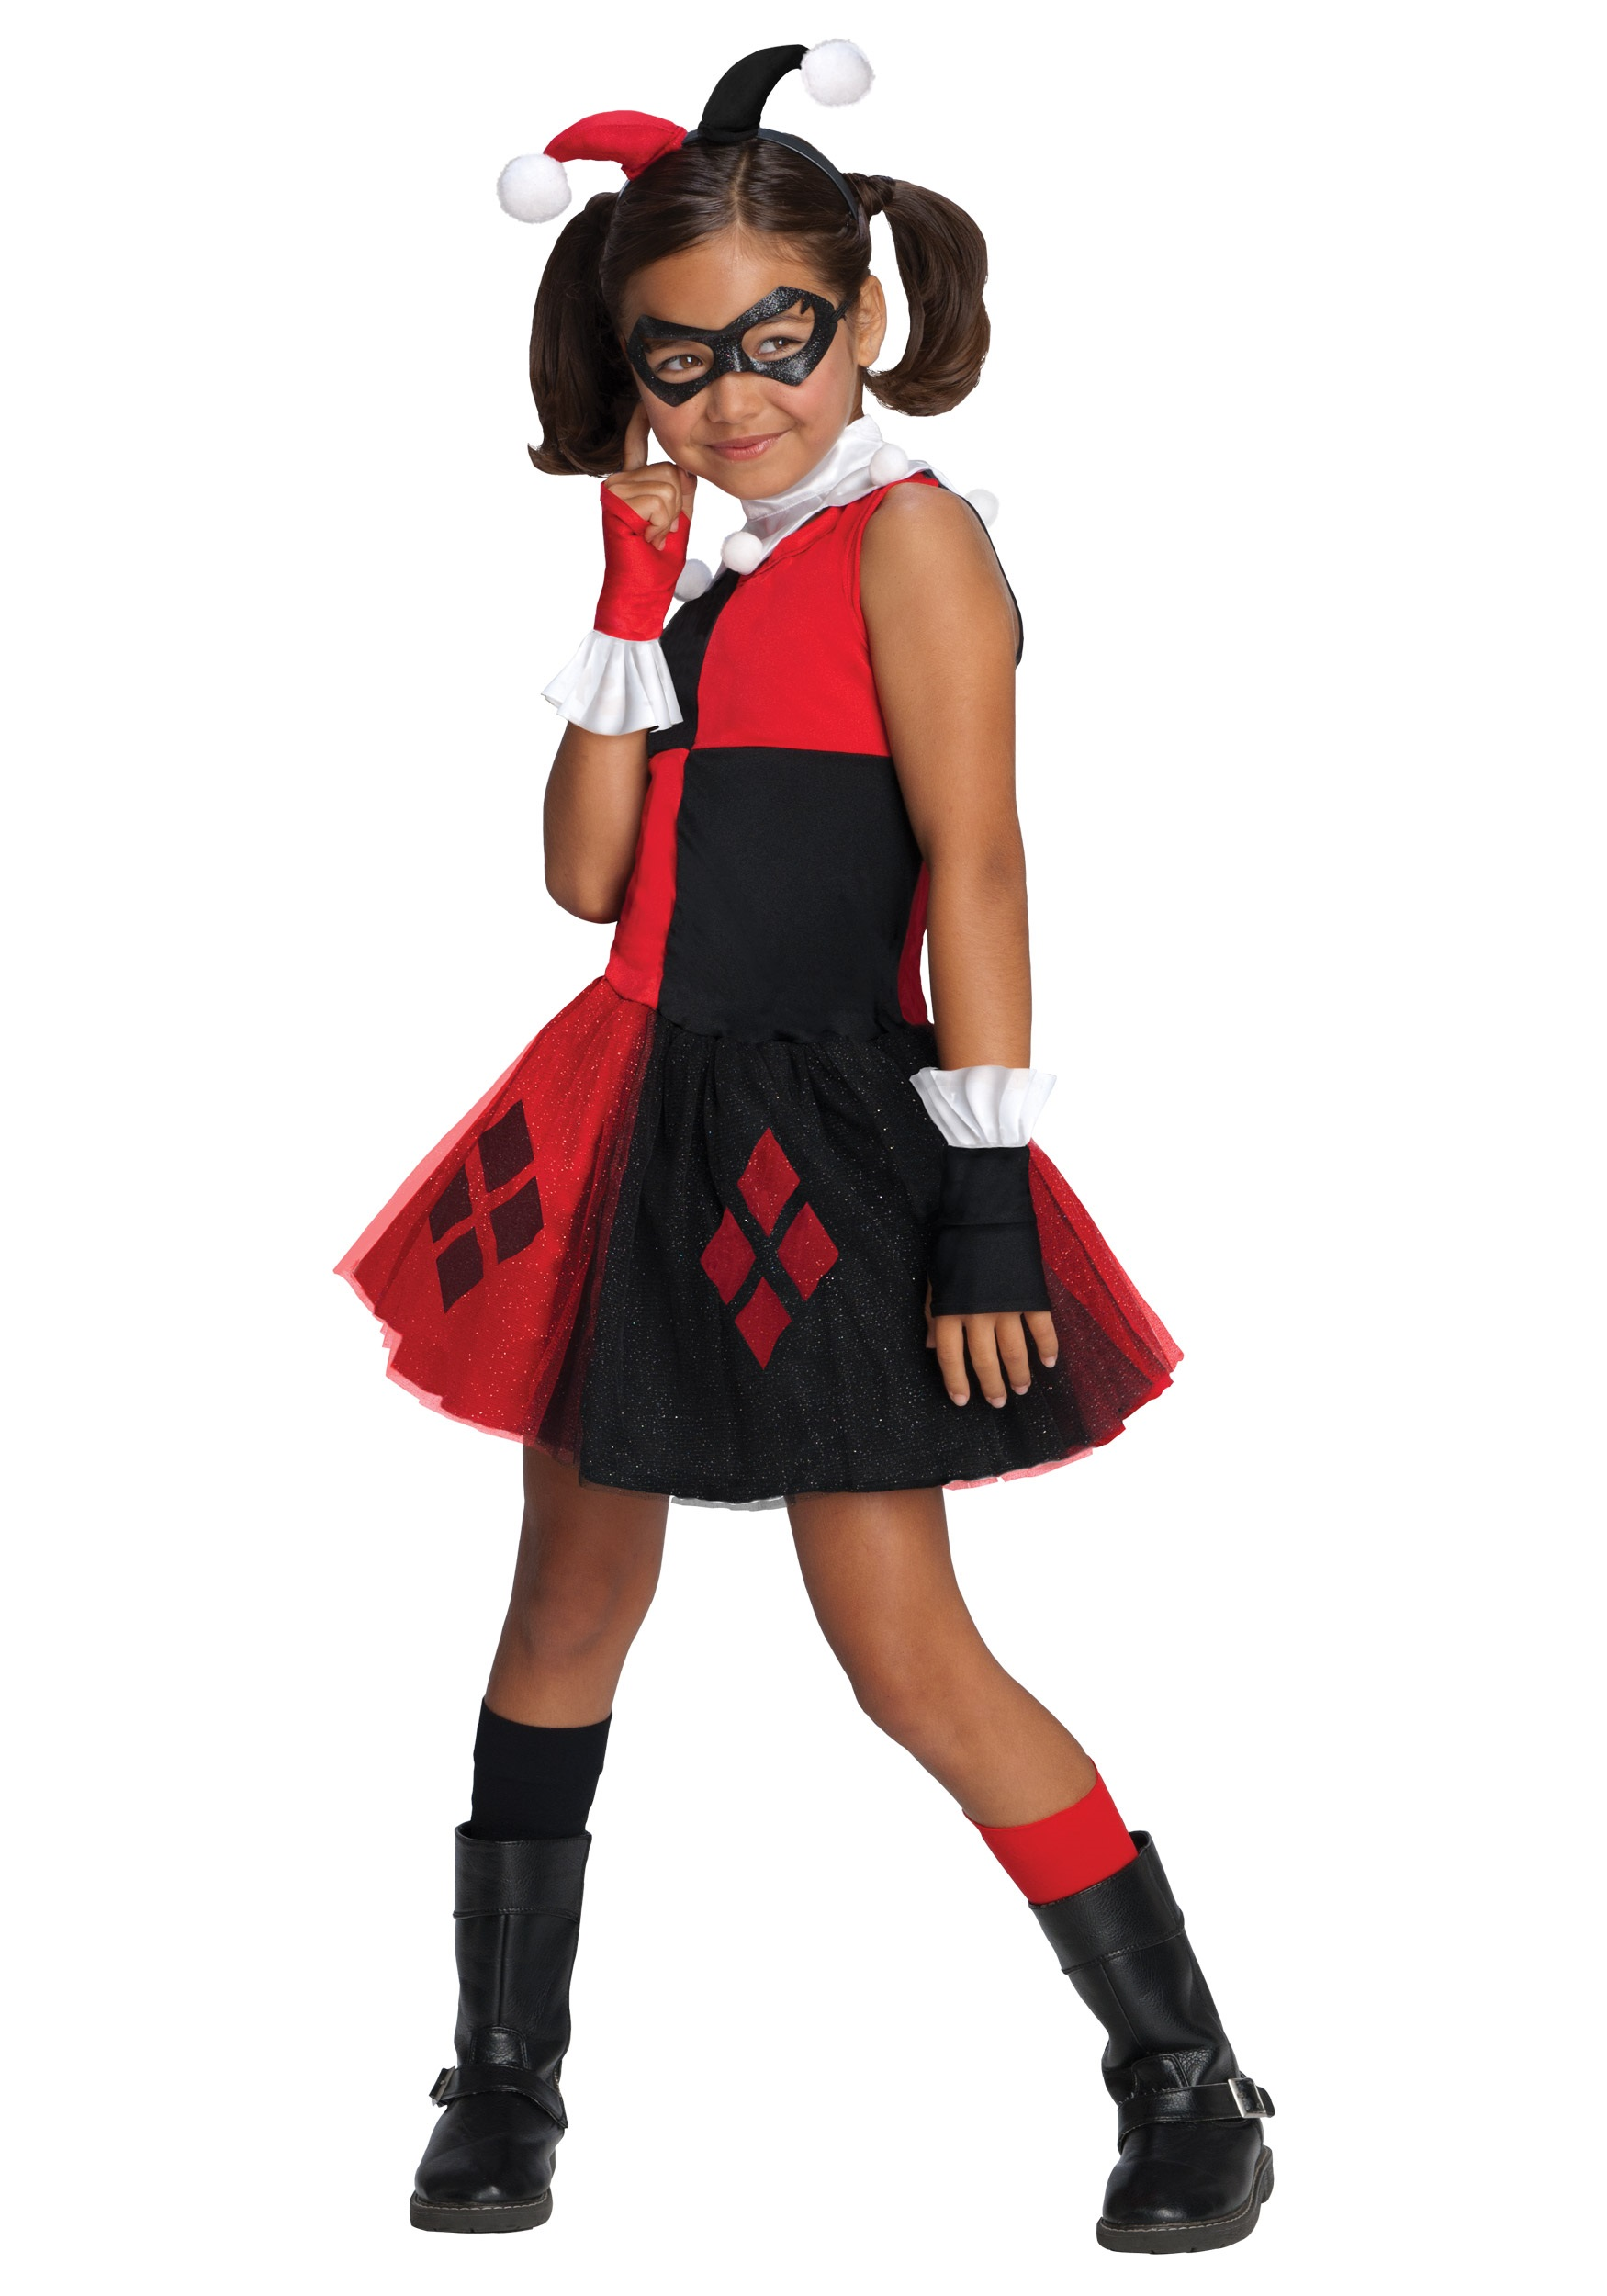 Girls harley quinn tutu costume solutioingenieria Image collections